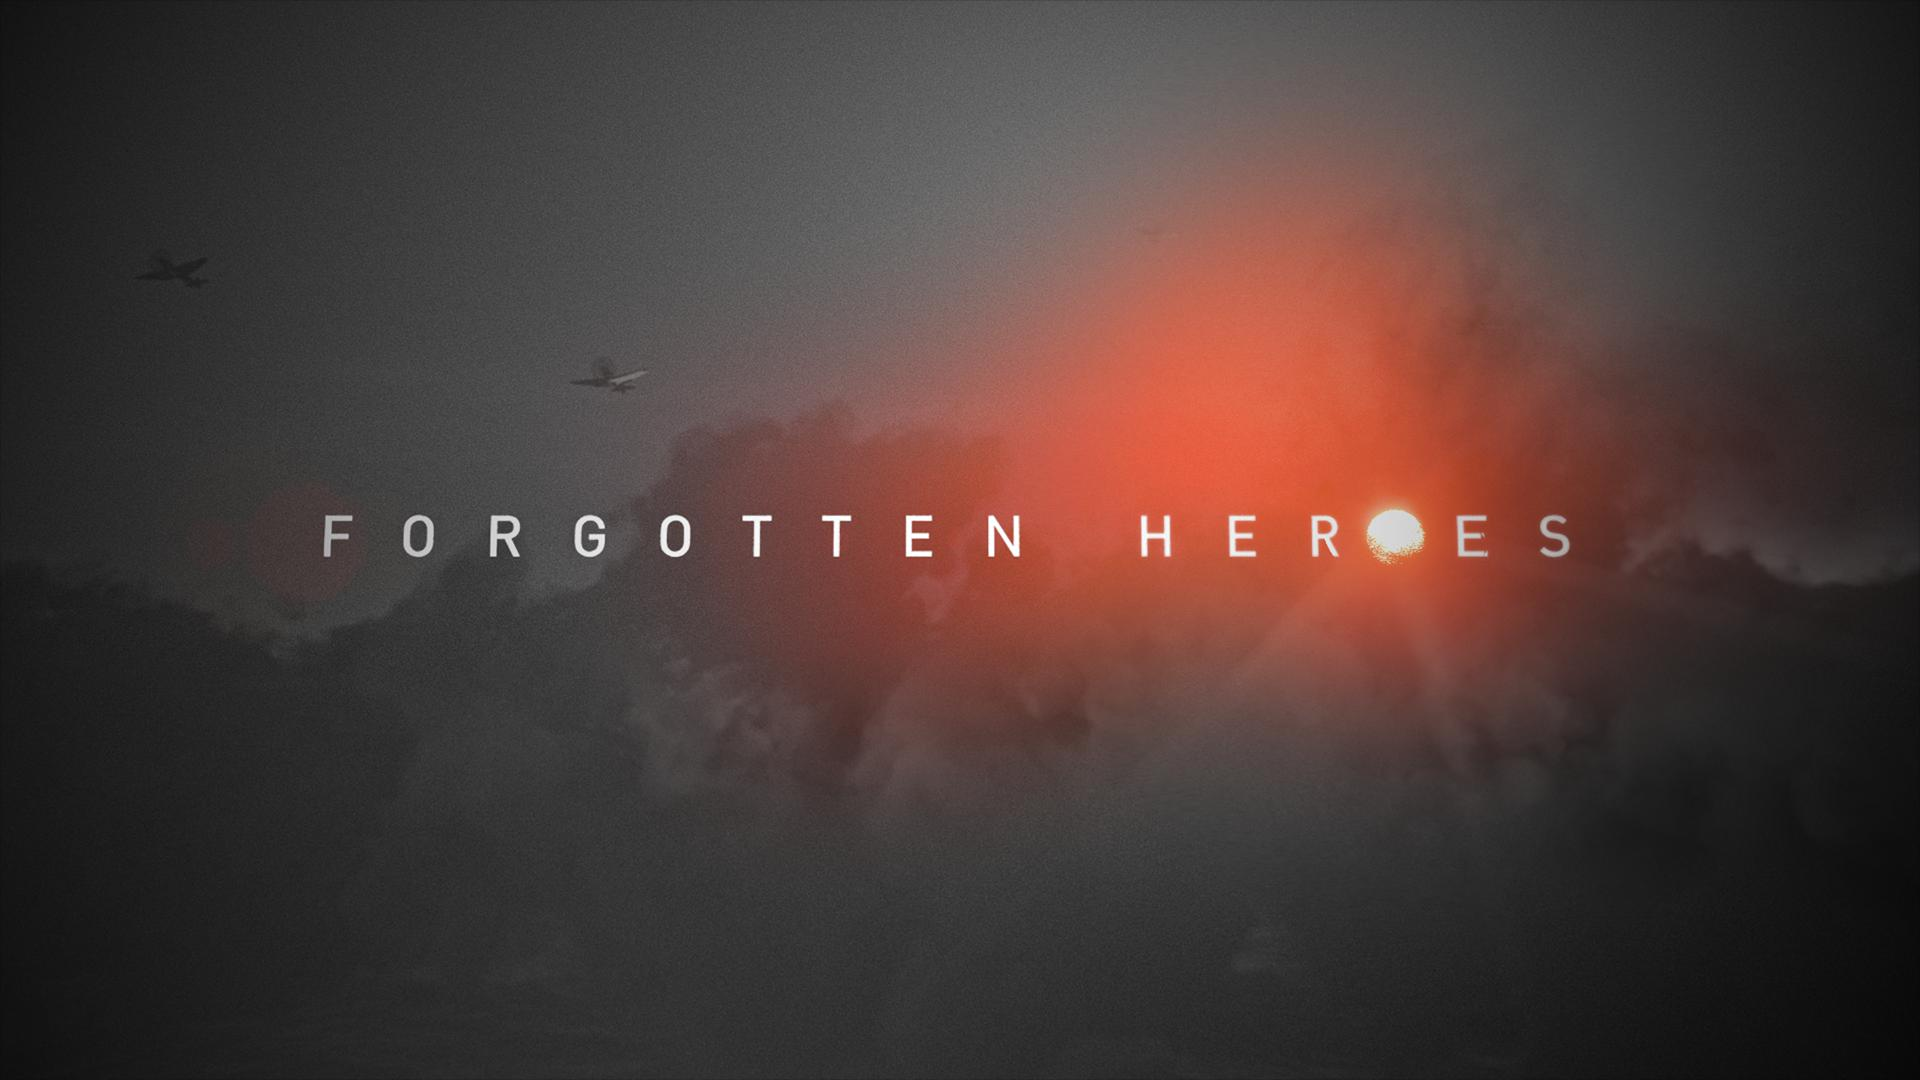 FORGOTTEN HEROES    (to play film click circle button to the right. To add to watchlist, click + button below it)